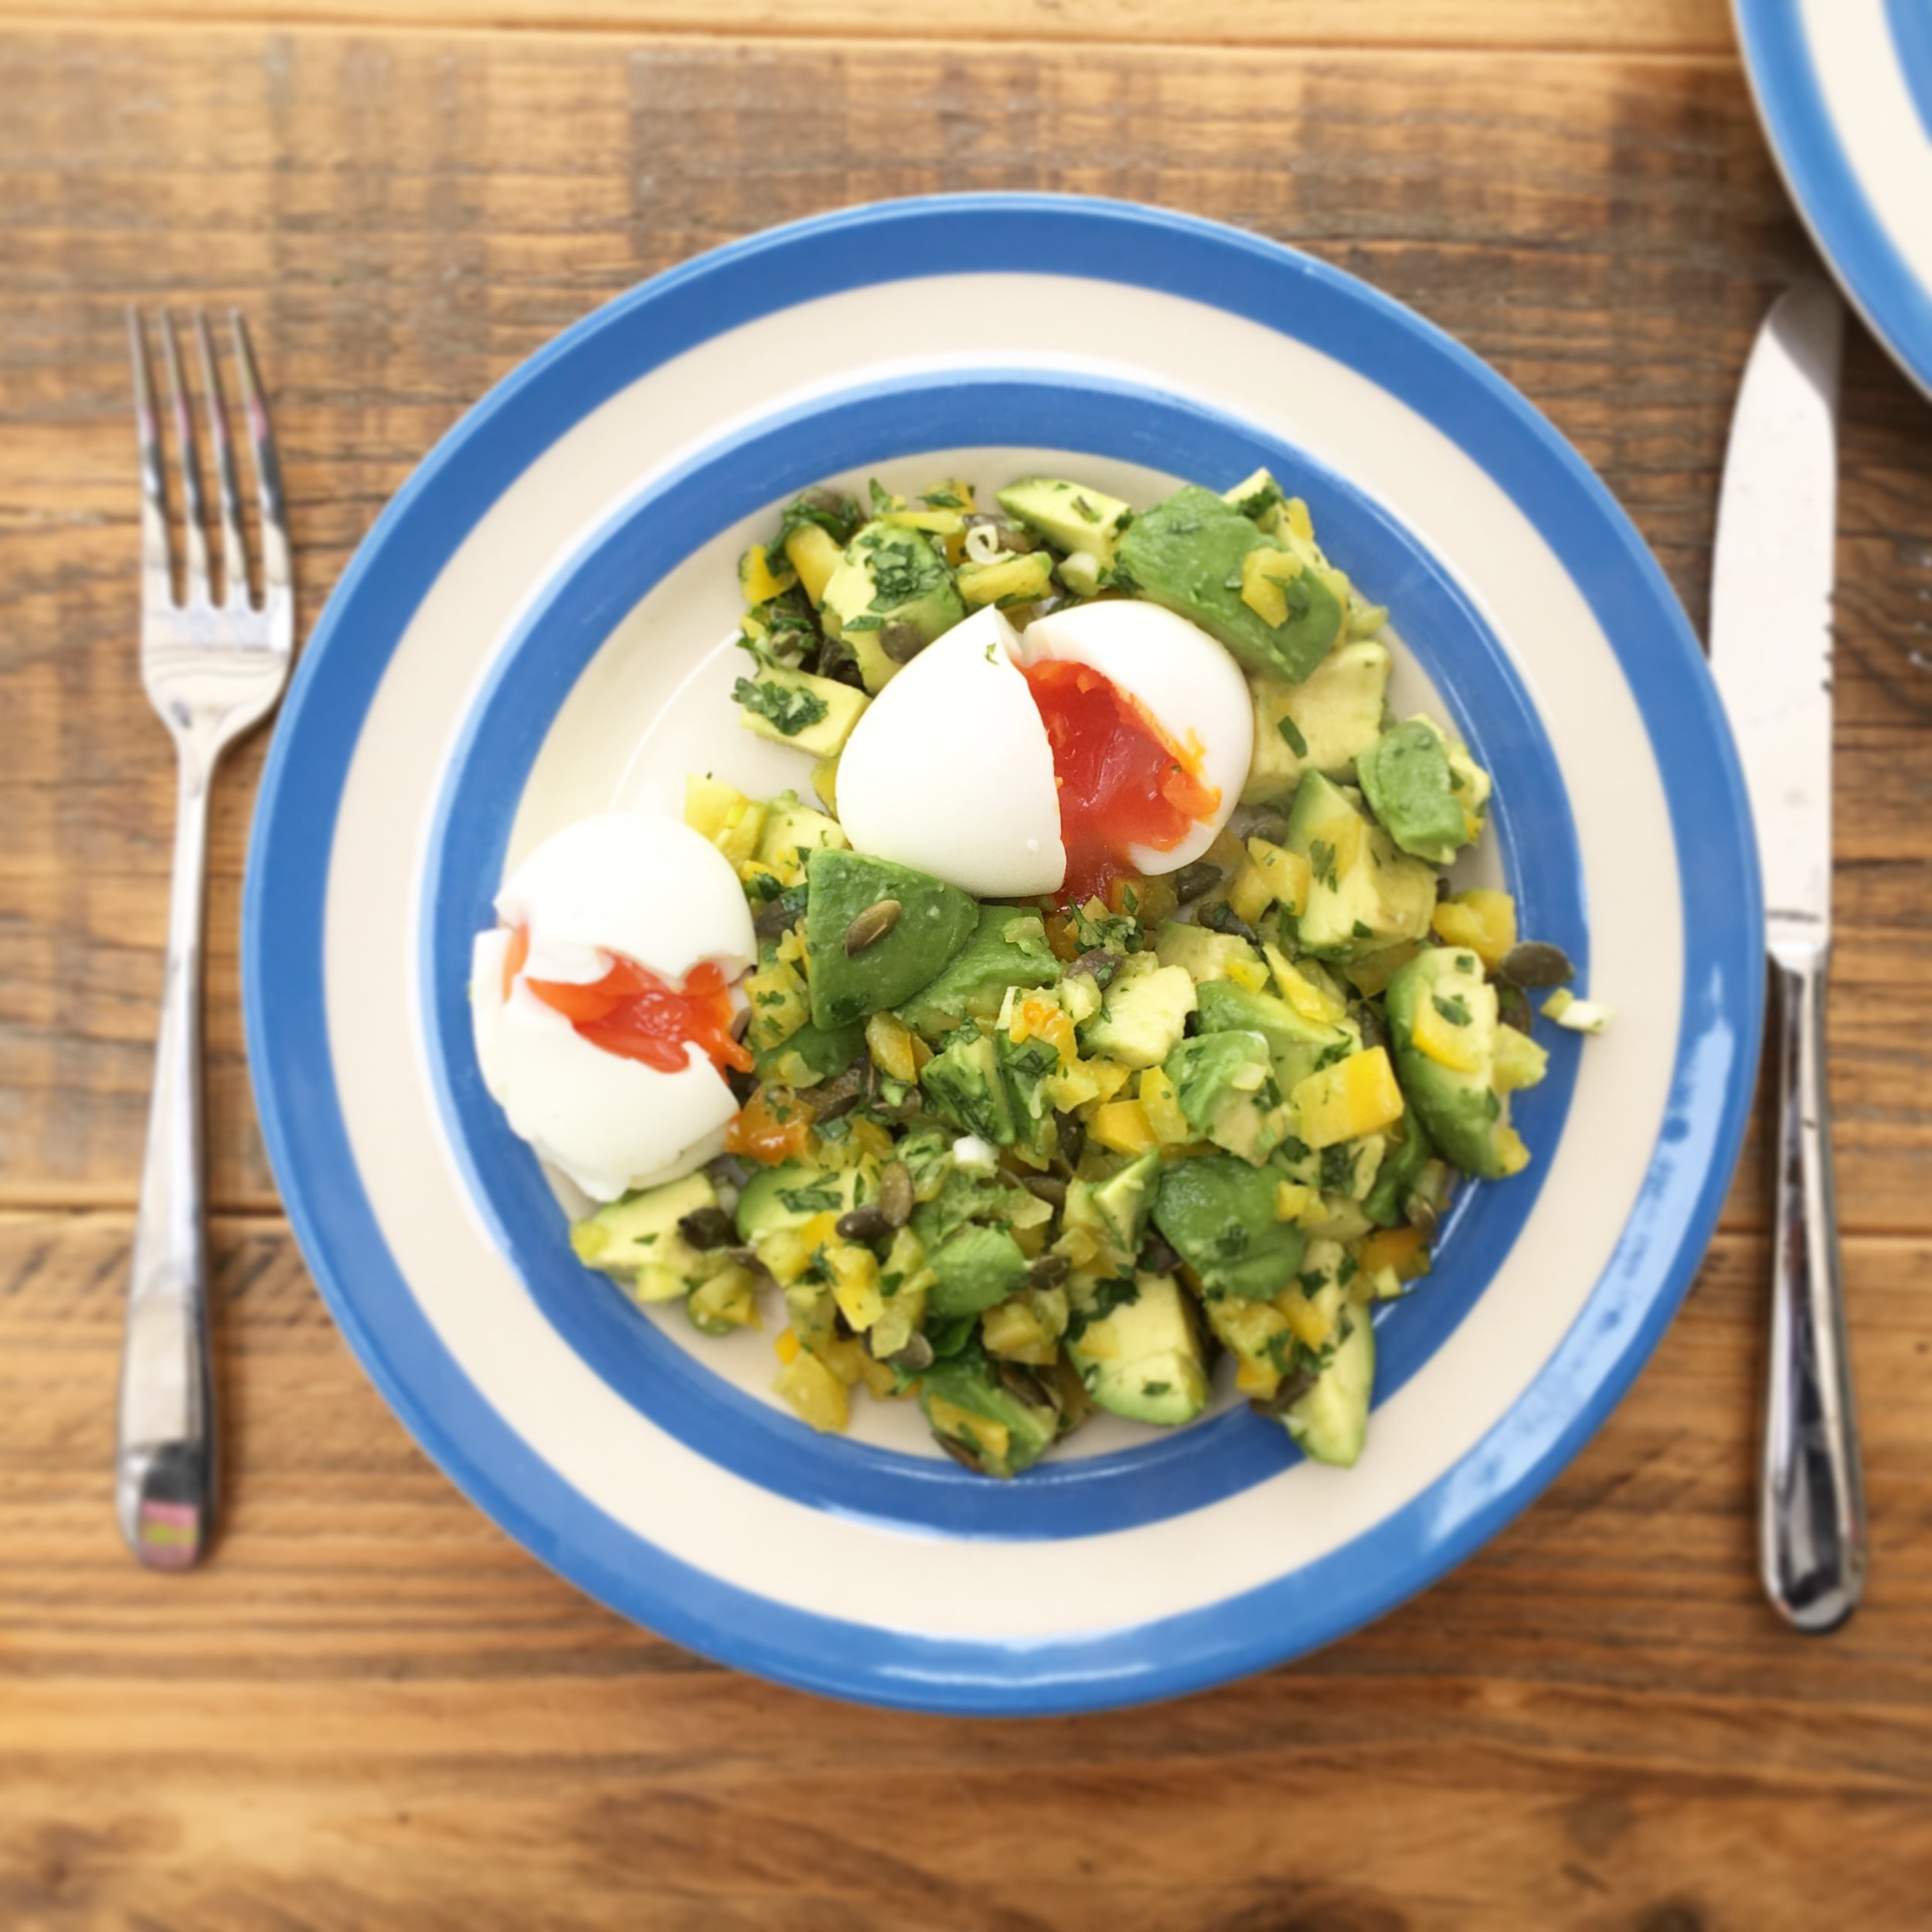 soft-boiled eggs with avocado salad